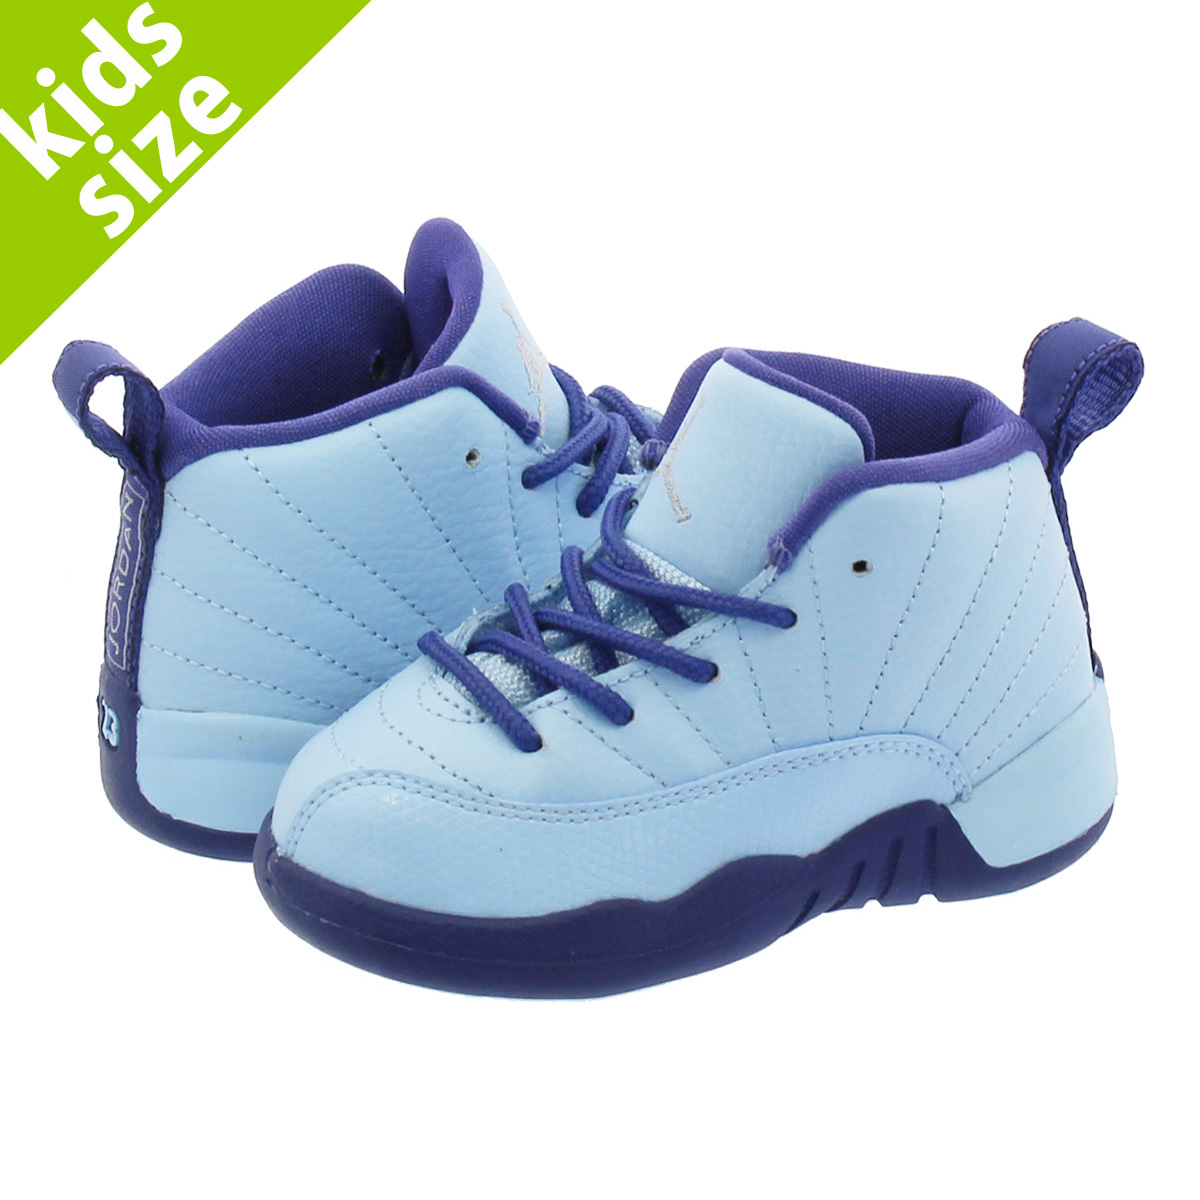 buy online 2c61d 4a723 NIKE AIR JORDAN 12 RETRO TD Nike Air Jordan 12 nostalgic TD LIGHT  BLUE/NAVY/BLUE